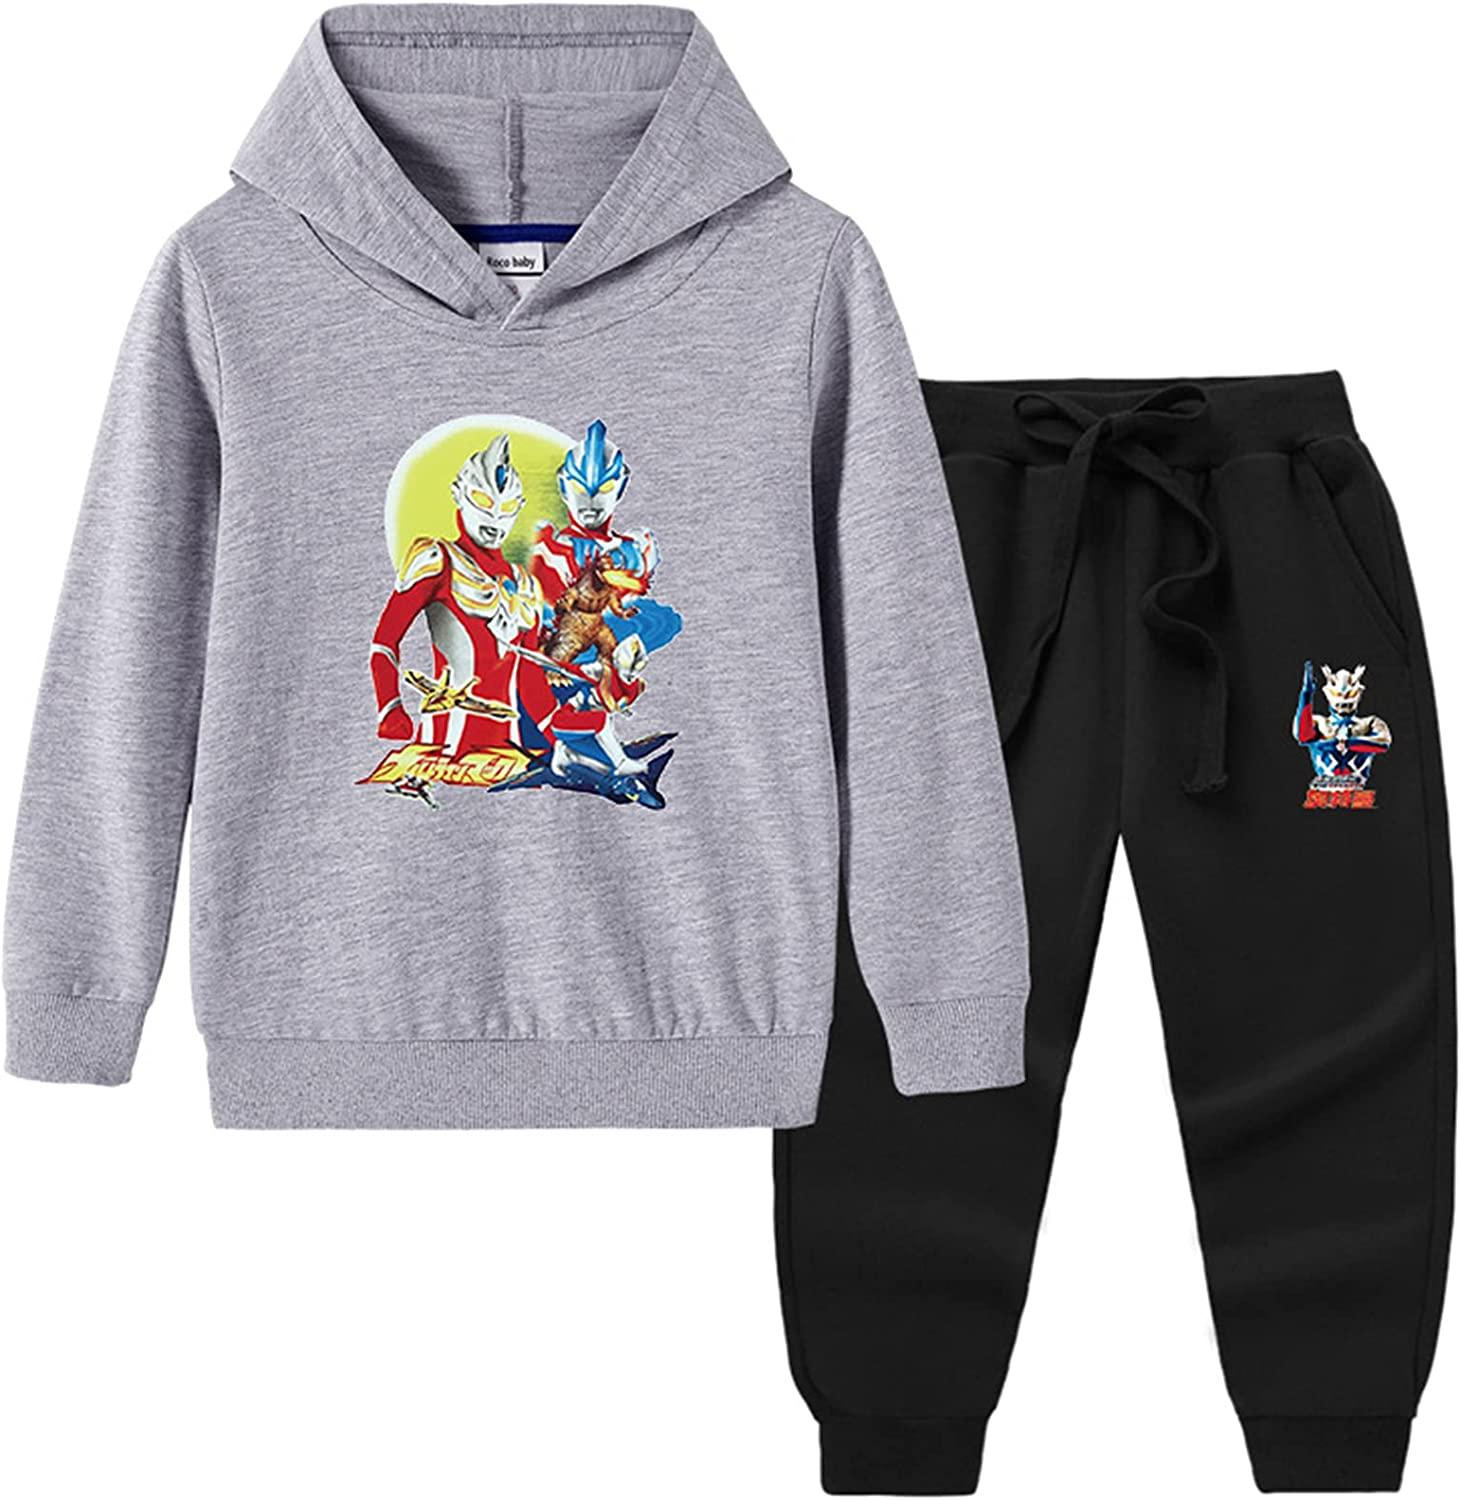 GD-Clothes Unisex Ultraman Sweatshirt and Pants 2 Pieces Outfits Sweatsuit Long Sleeve Hoodie Set for Boys Girls